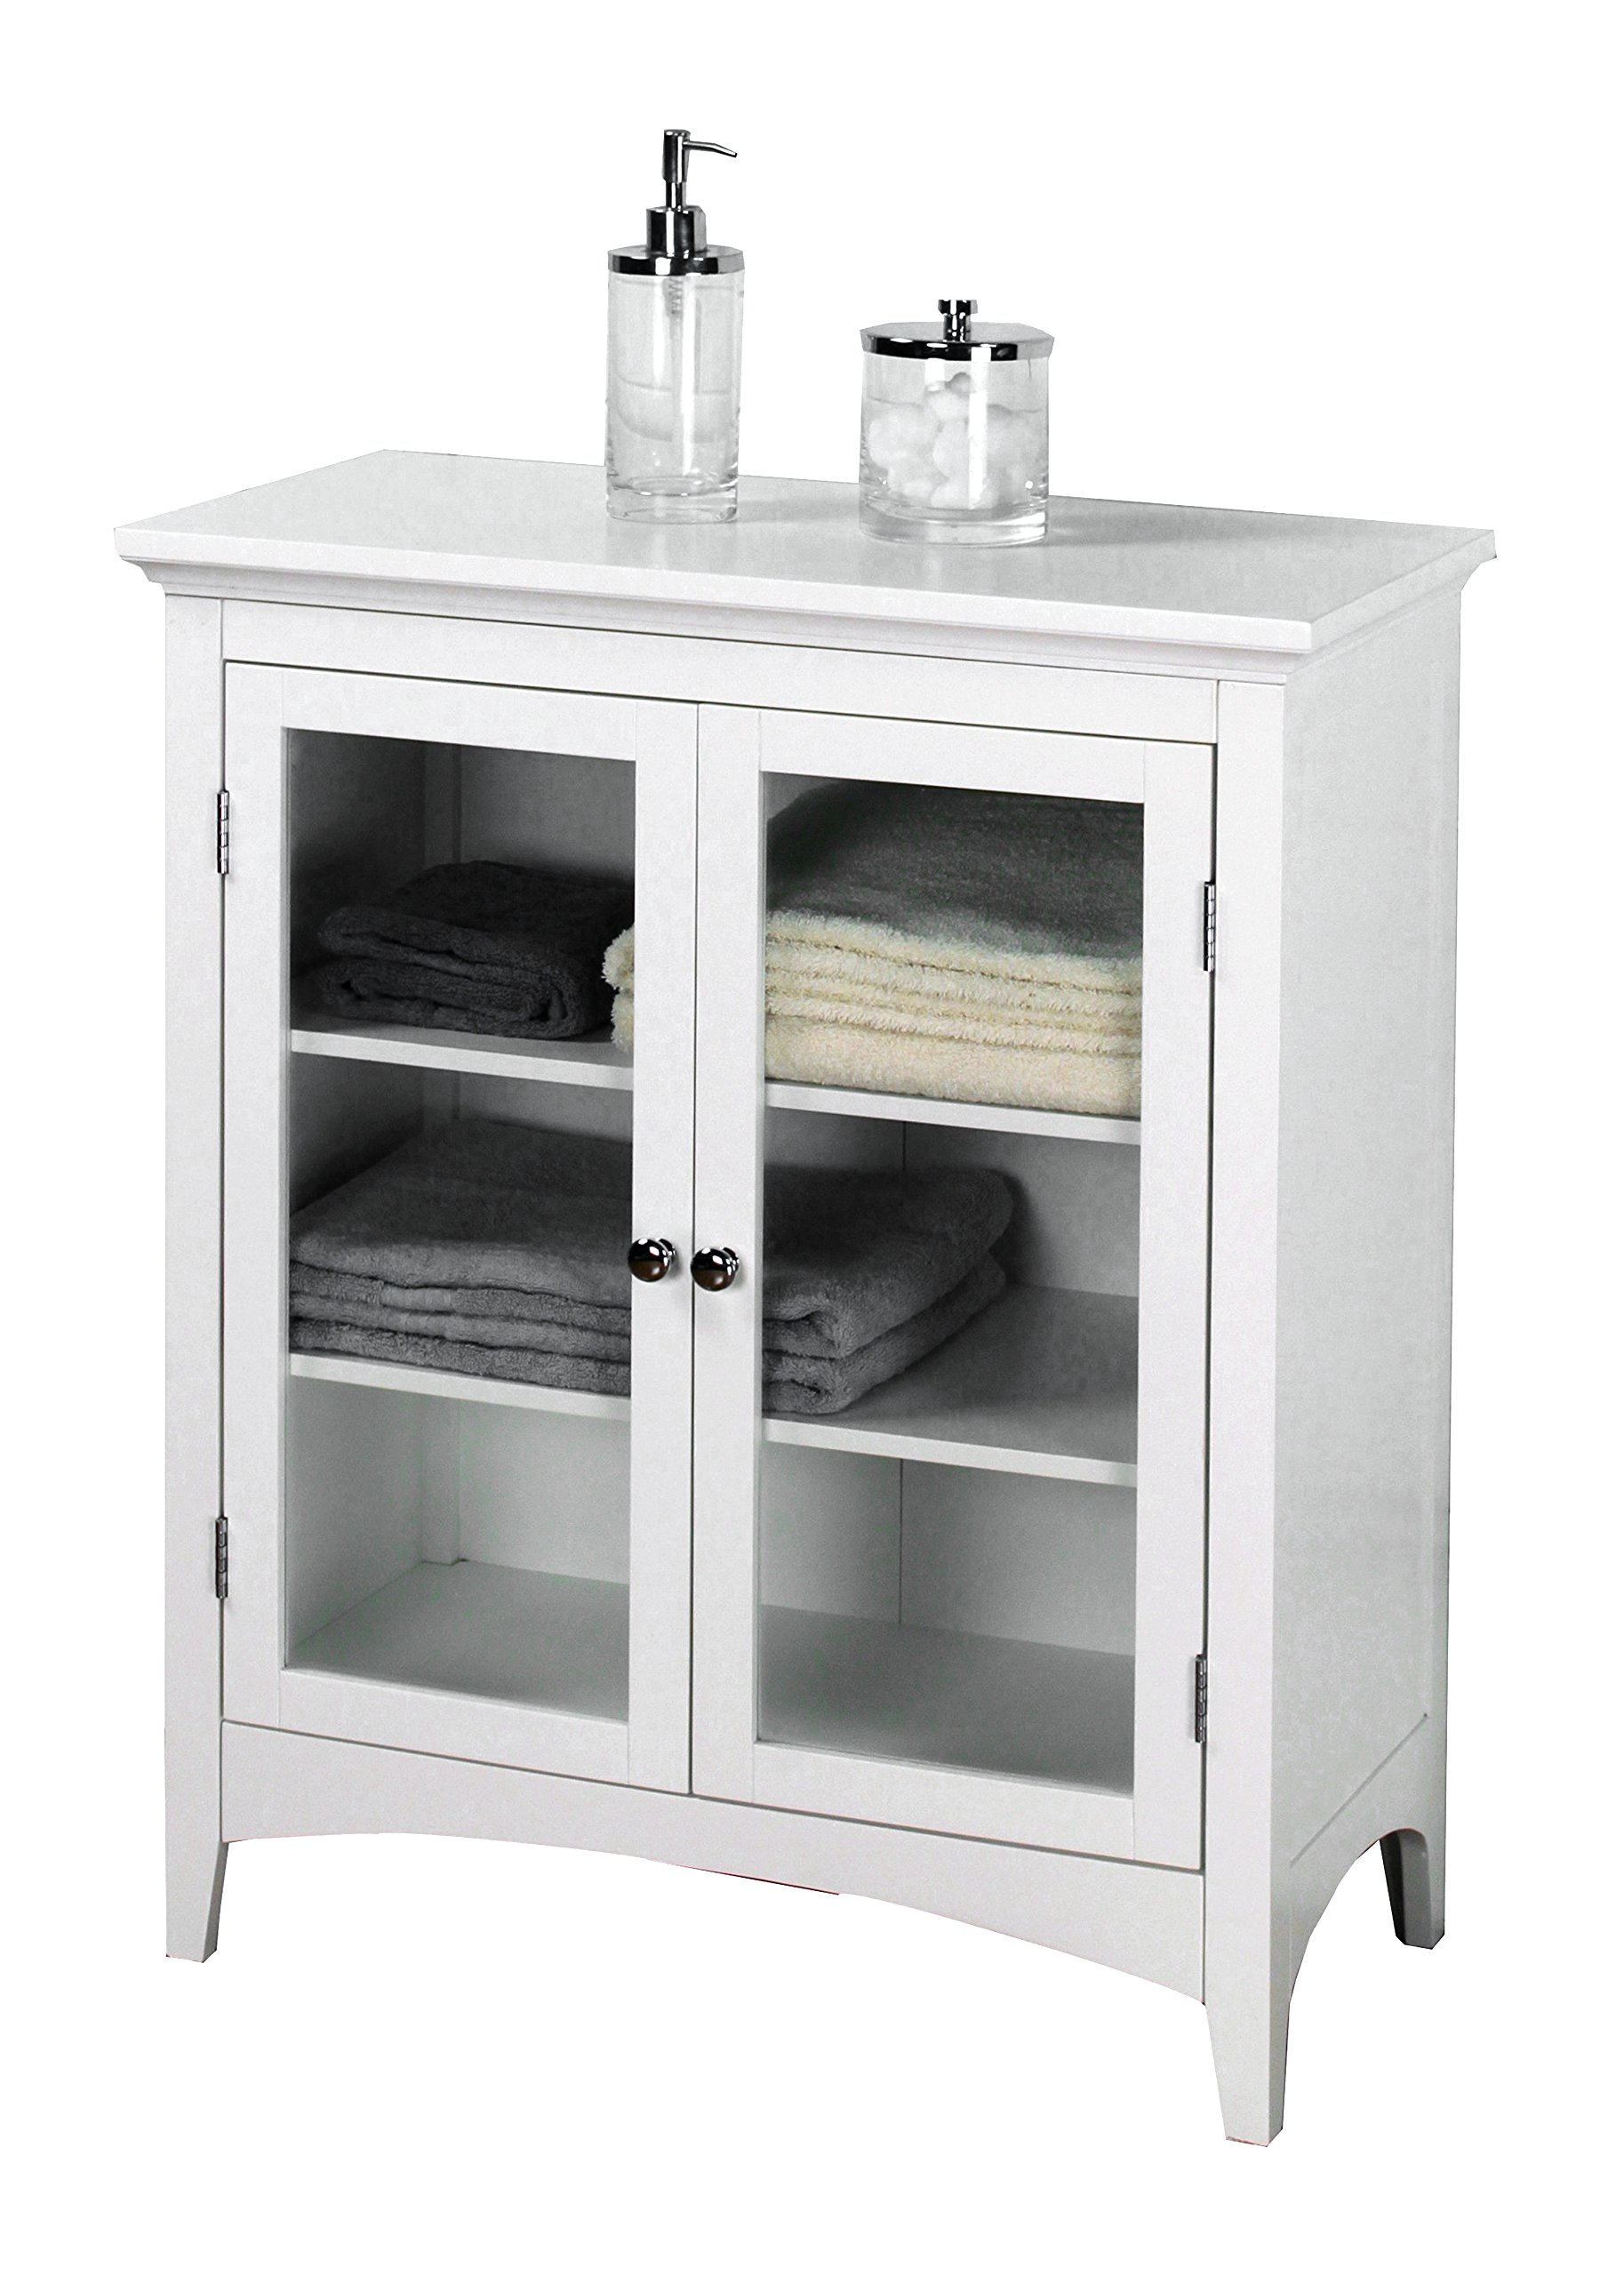 Elegant Home Fashions Madison Collection Shelved Double-Door Floor Cabinet, White by Elegant Home Fashions (Image #1)